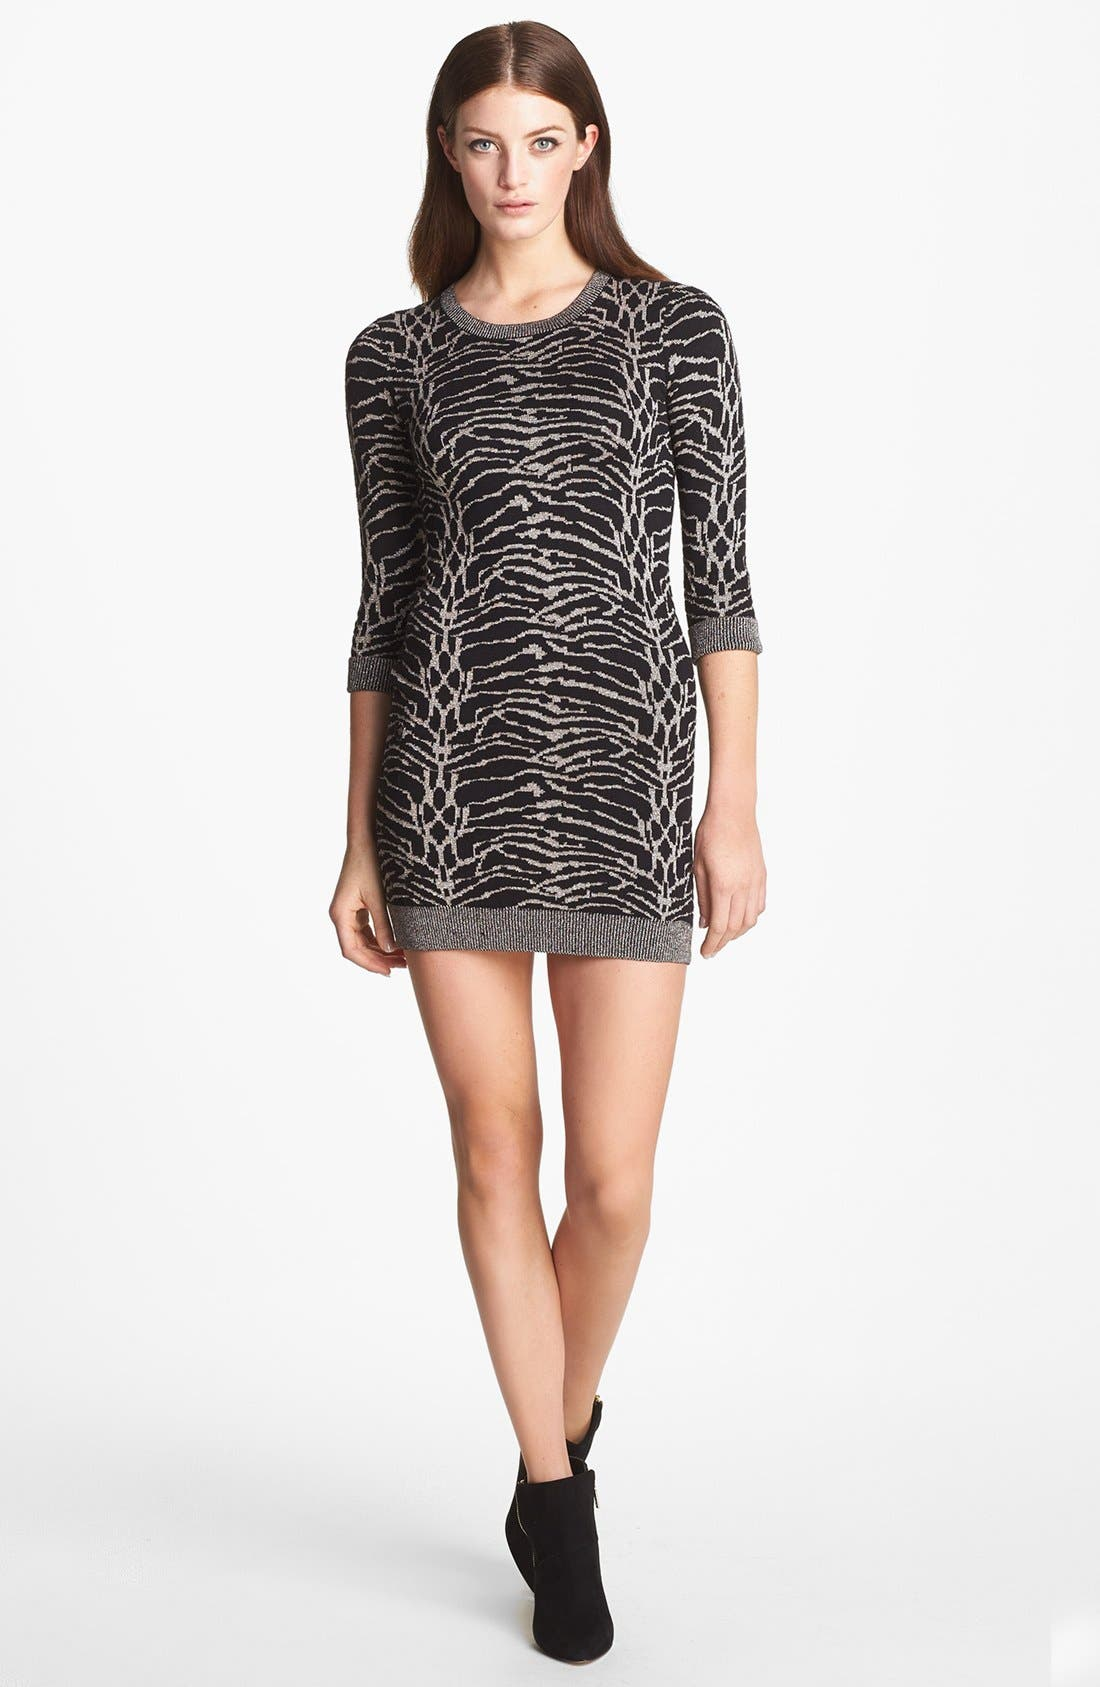 Alternate Image 1 Selected - French Connection 'Snow Tiger' Metallic Sweater Dress